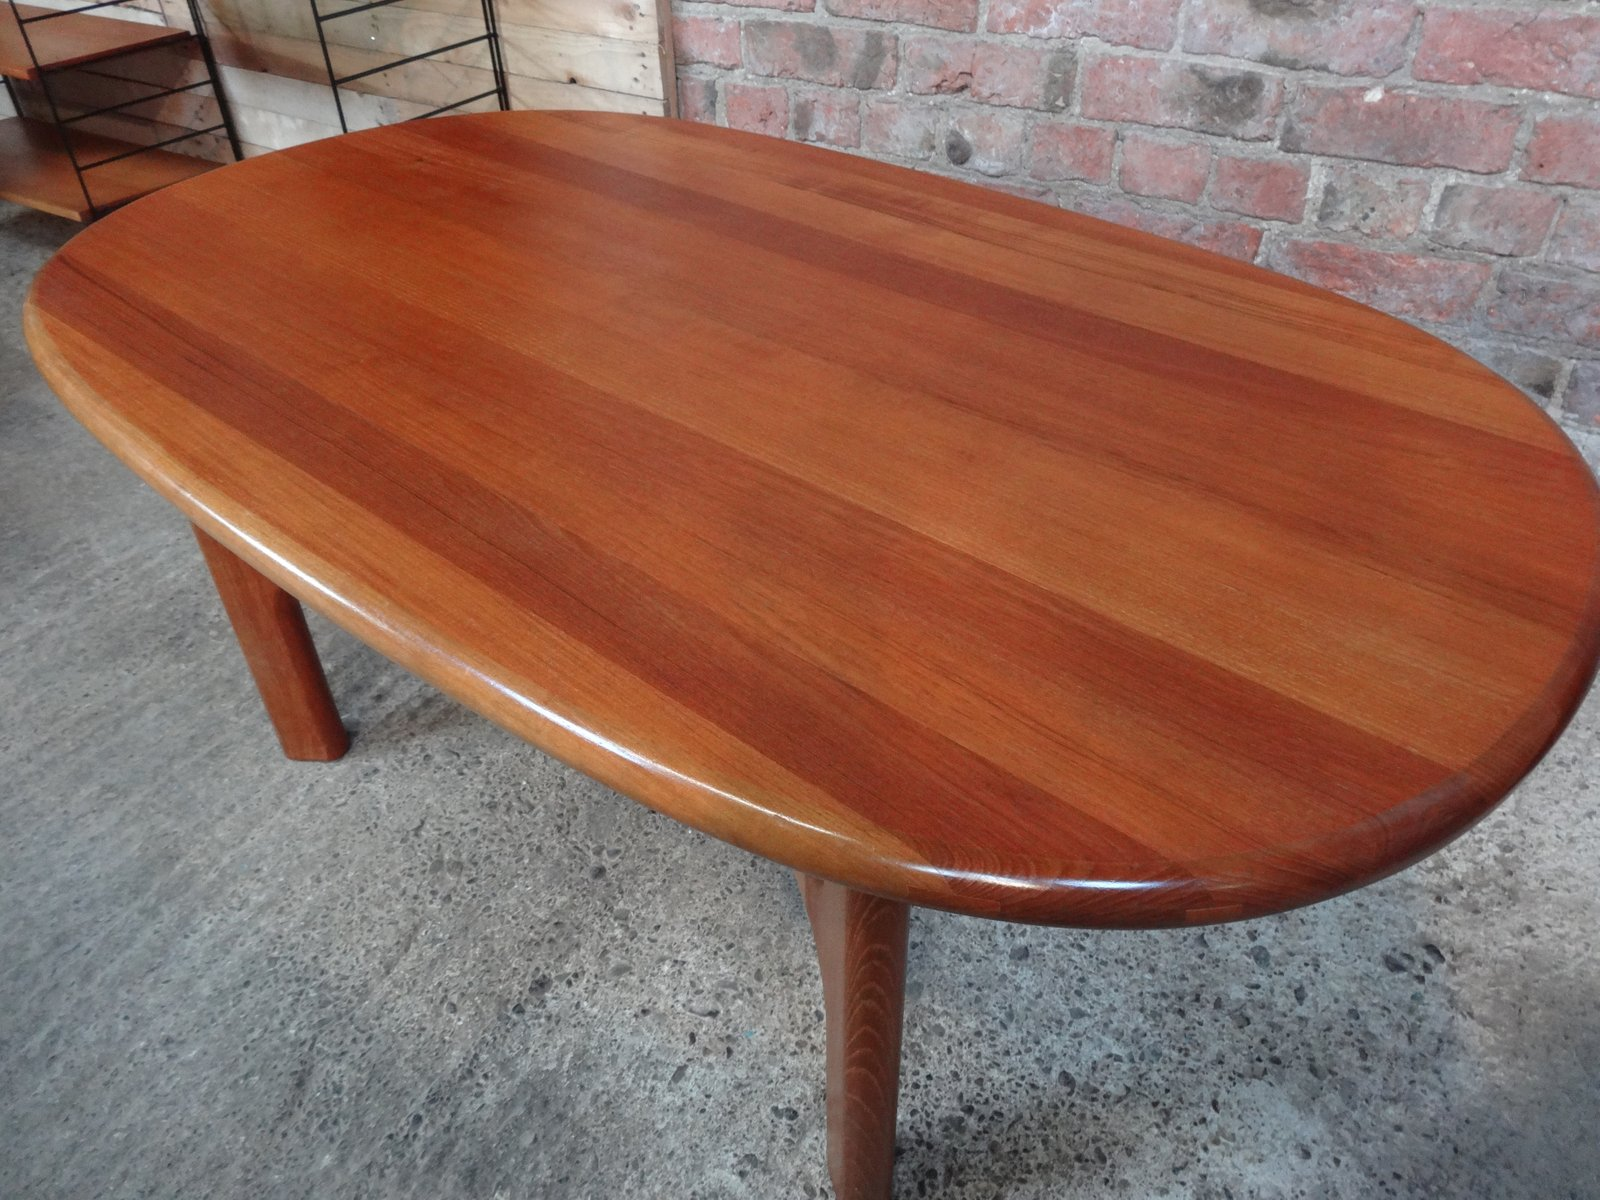 Table basse mid century en teck massif de dyrlund 1970s for Table basse en teck massif